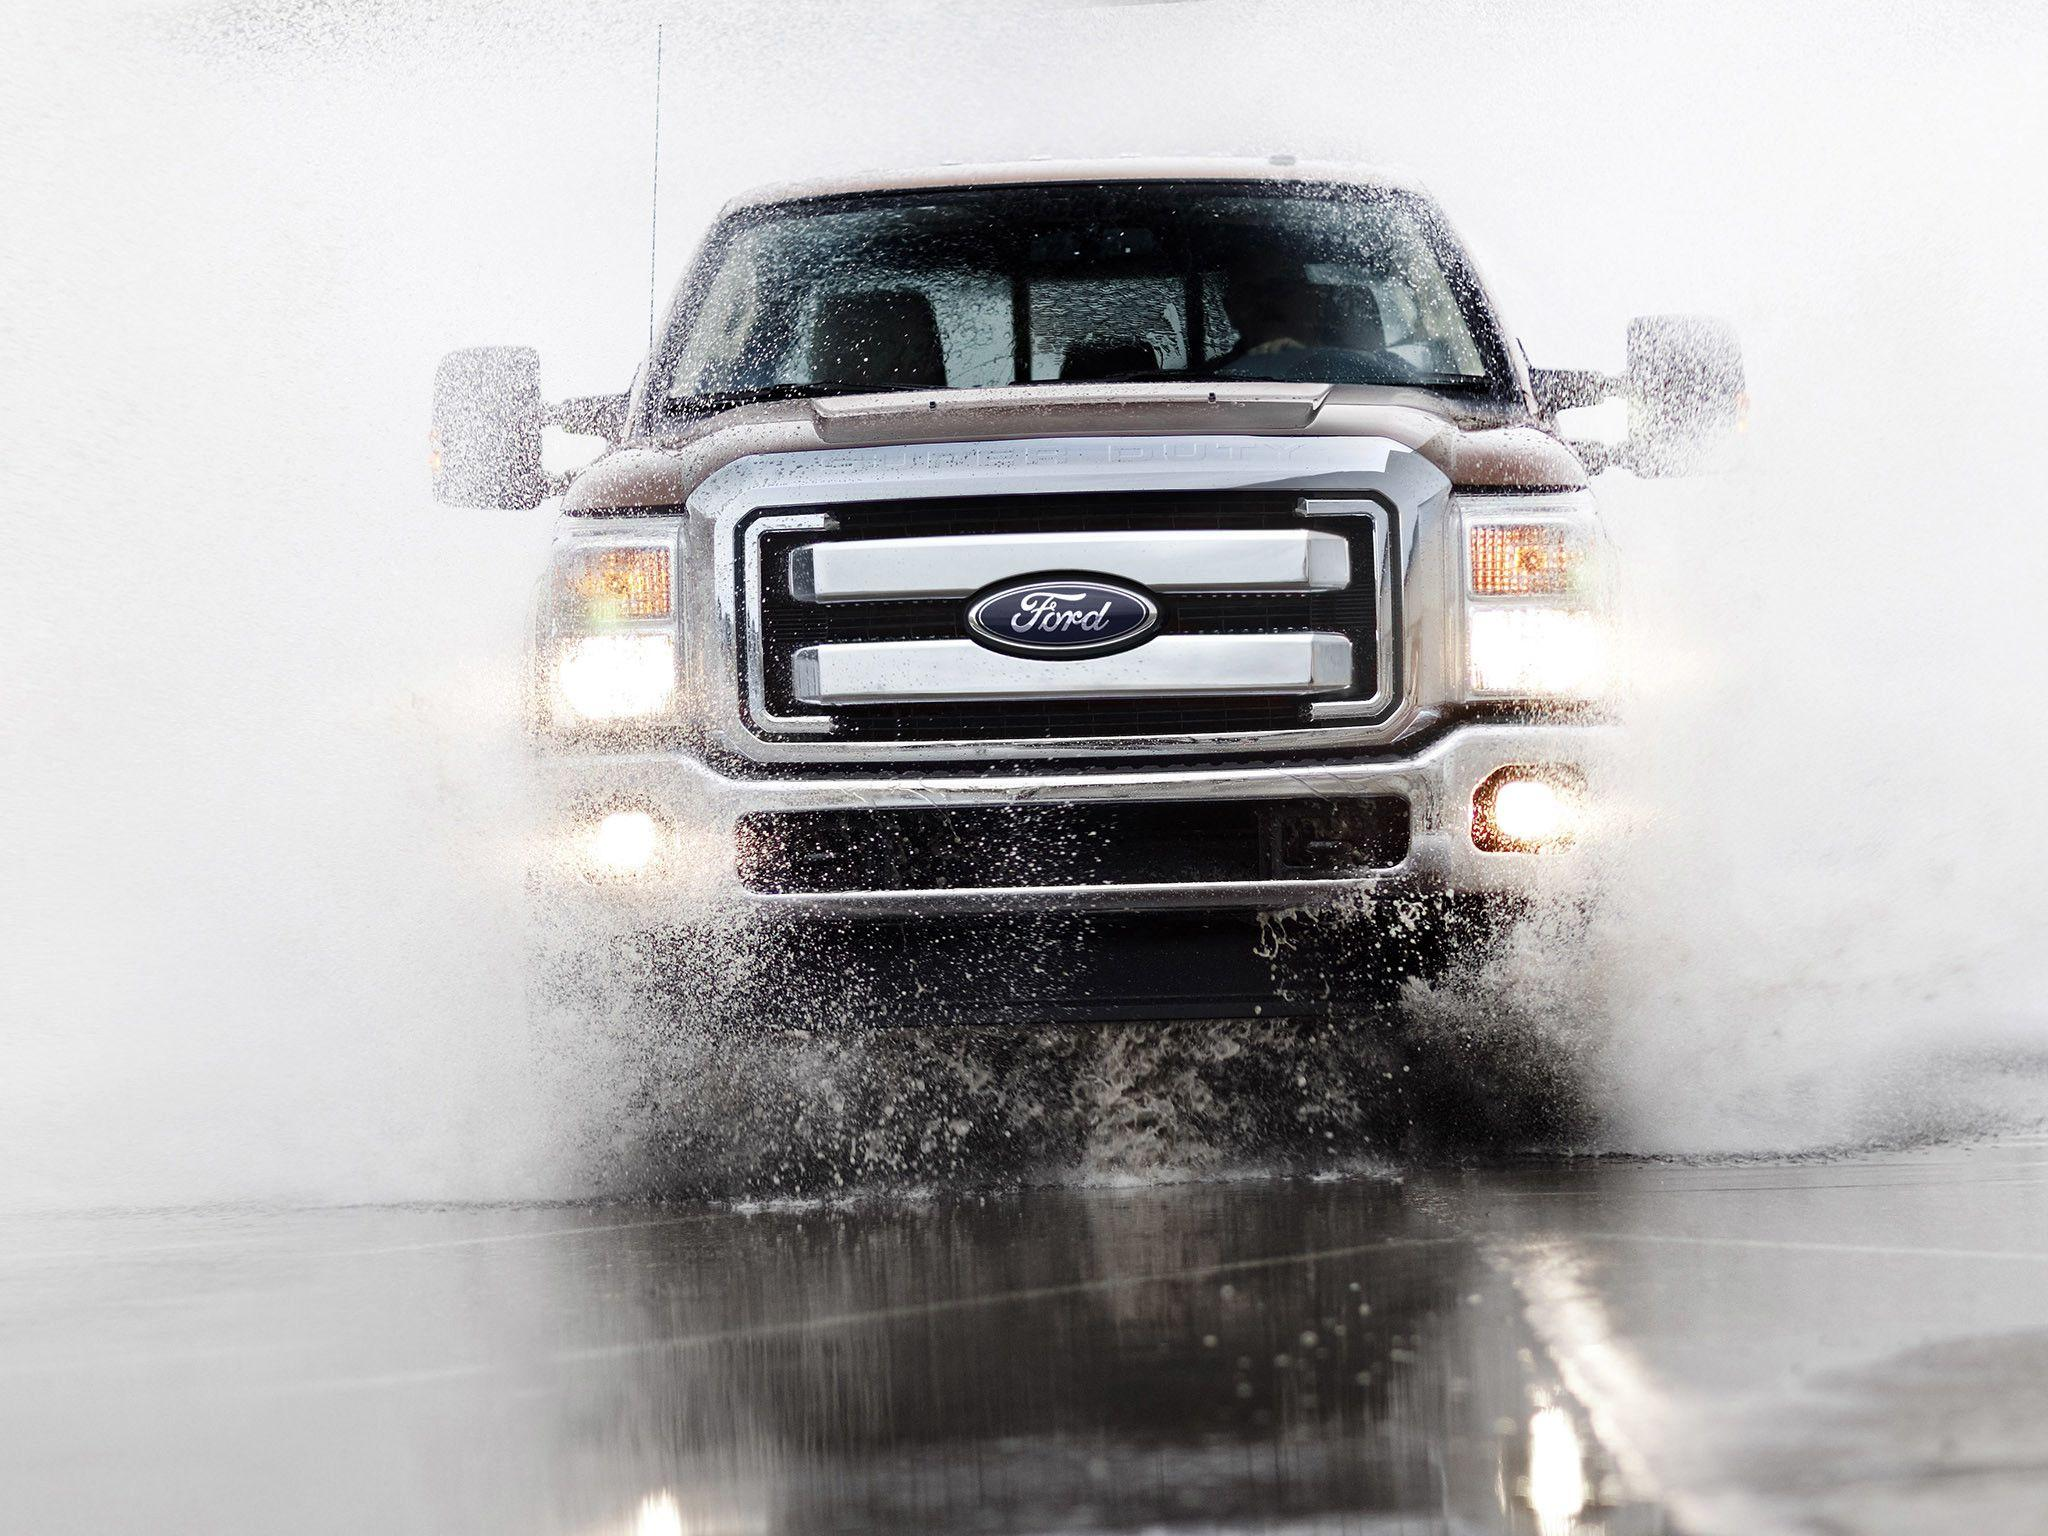 Ford F-250 Wallpaper 13 - 2048 X 1536 | stmed.net